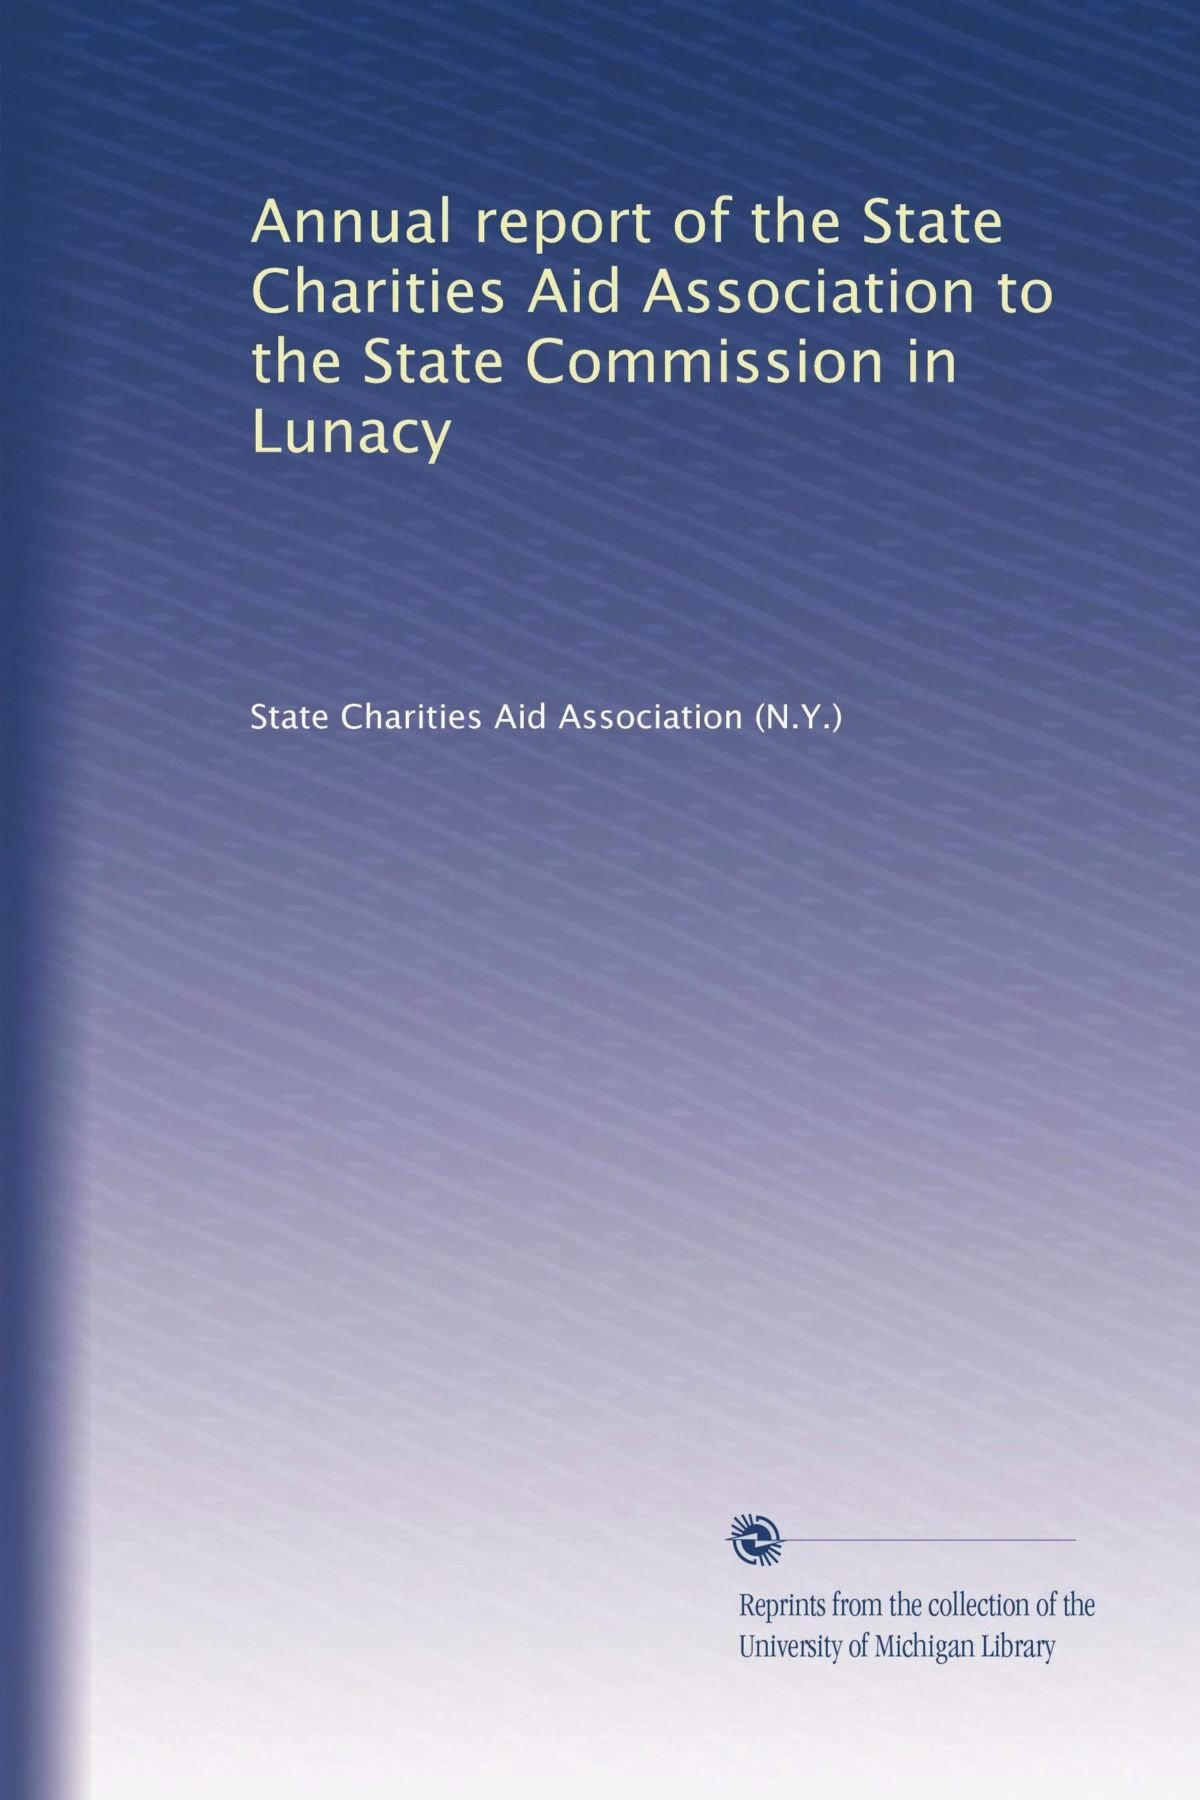 Annual report of the State Charities Aid Association to the State Commission in Lunacy pdf